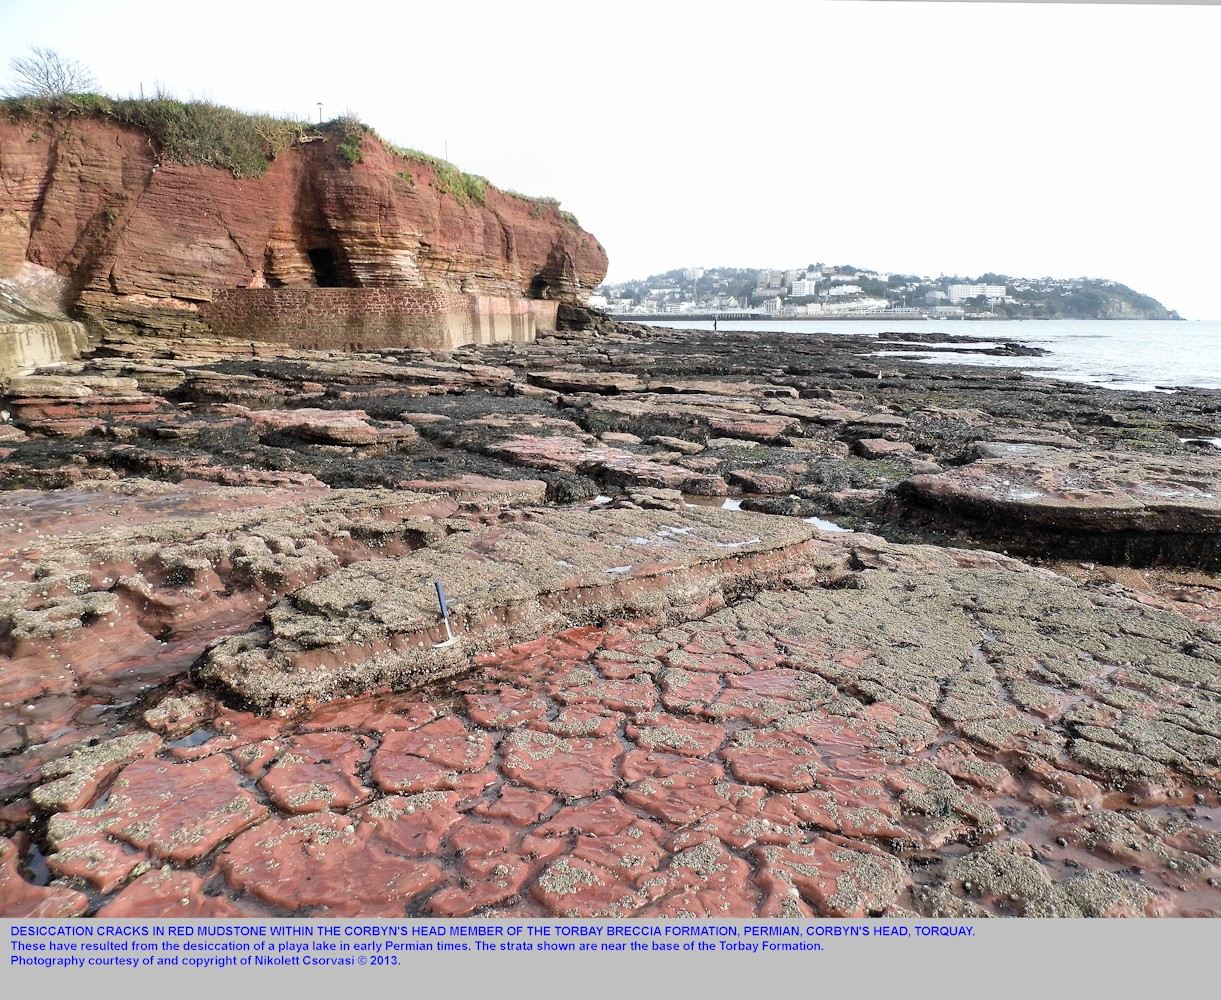 Desiccation cracks in red mudstone, Corbyn's Head Member, Corbyn's Head, Torquay, Devon, Jaunary 2012